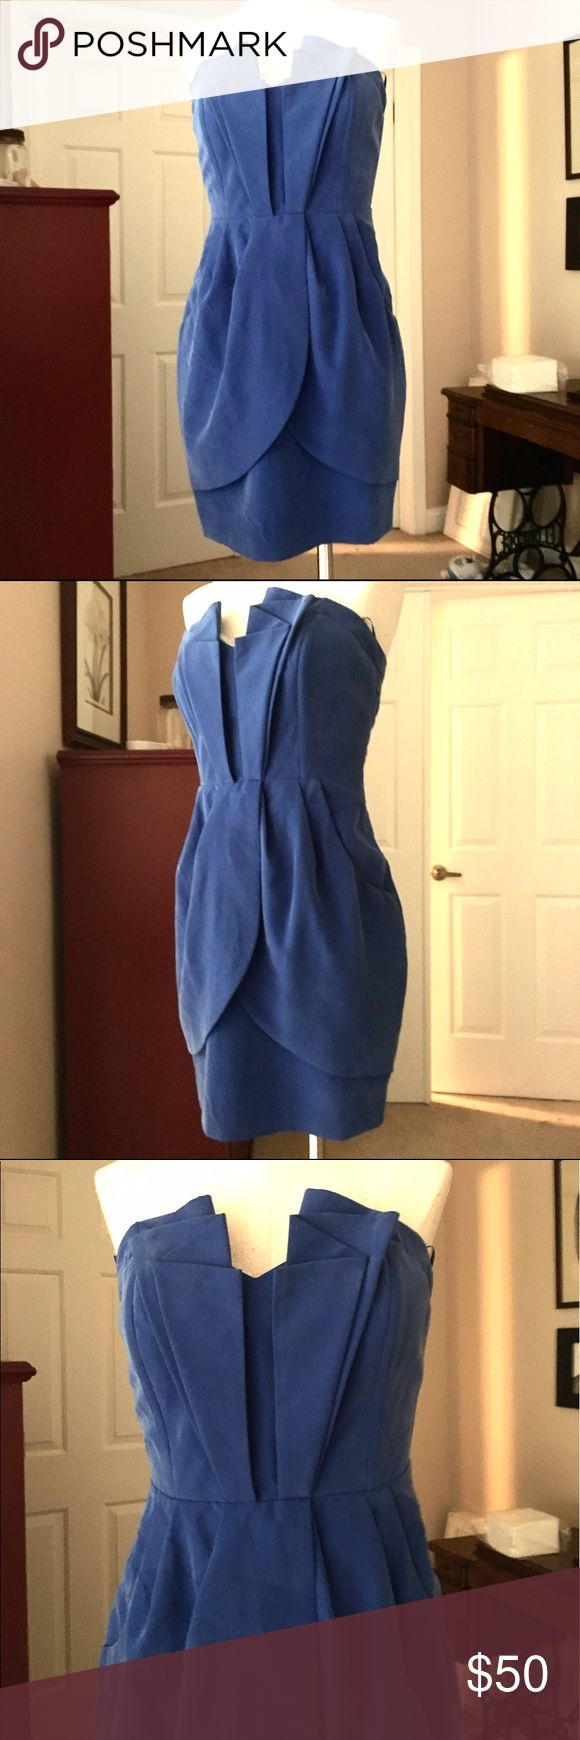 Guess Silk Royal Blue Cocktail Dress Sz 4 ❤️😍 No stains or rips. Make an offer!😍 Guess Dresses Mini